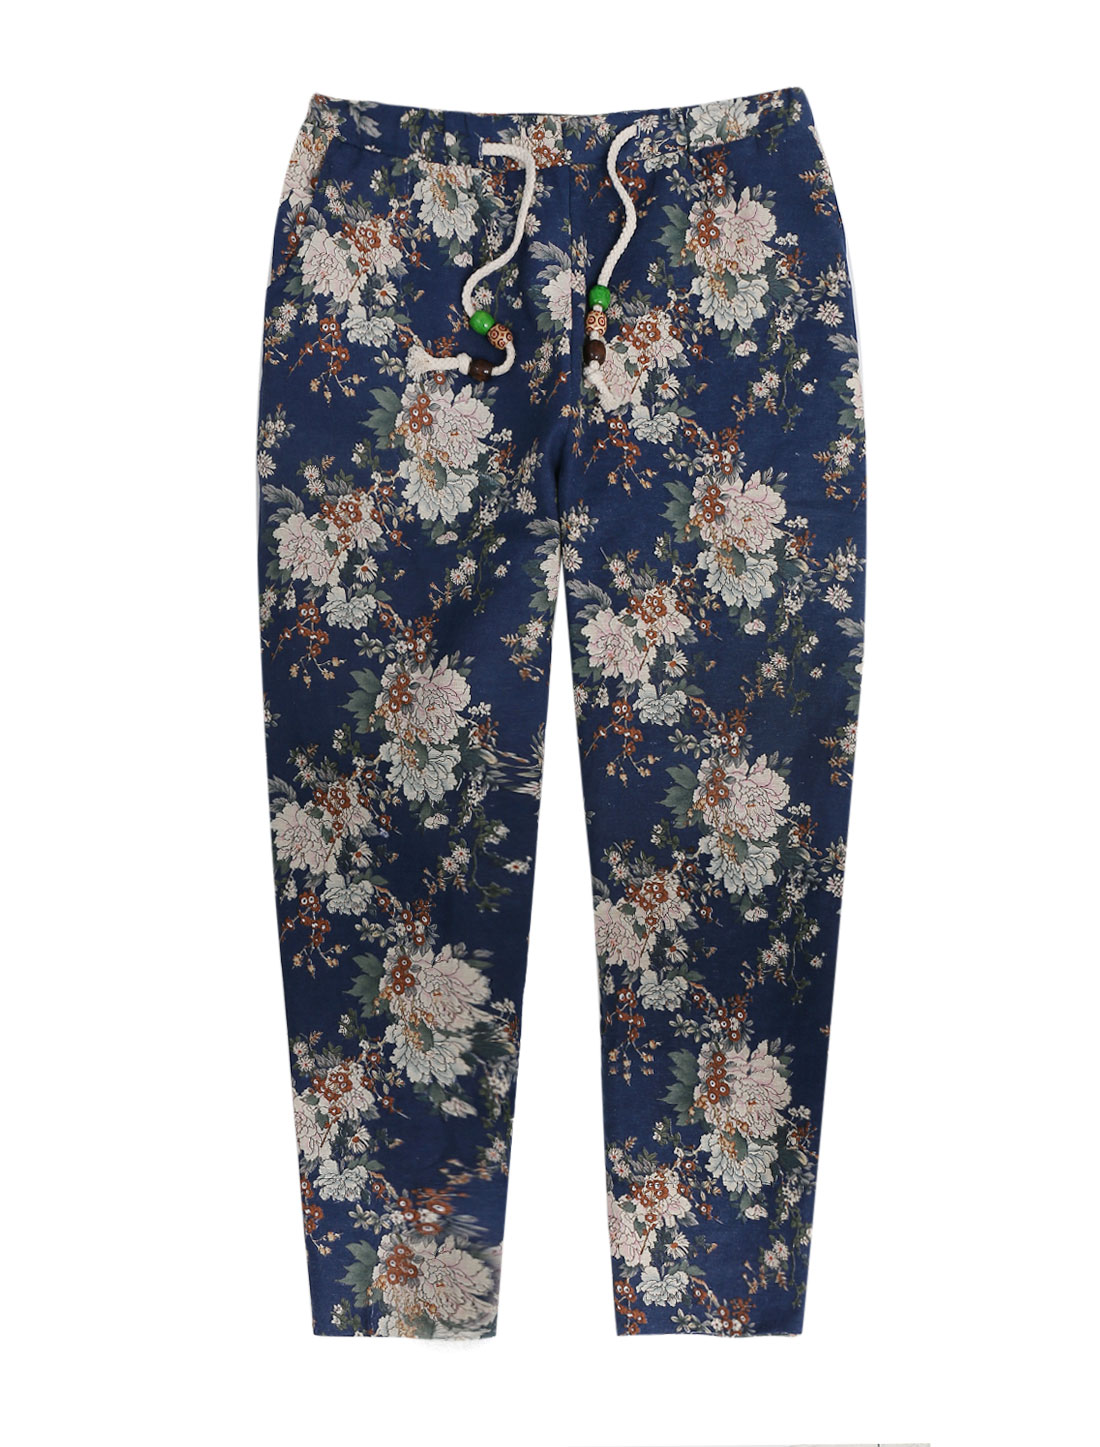 Men Stretchy Drawstring Waist Floral Prints Casual Cropped Pants Dark Blue W30